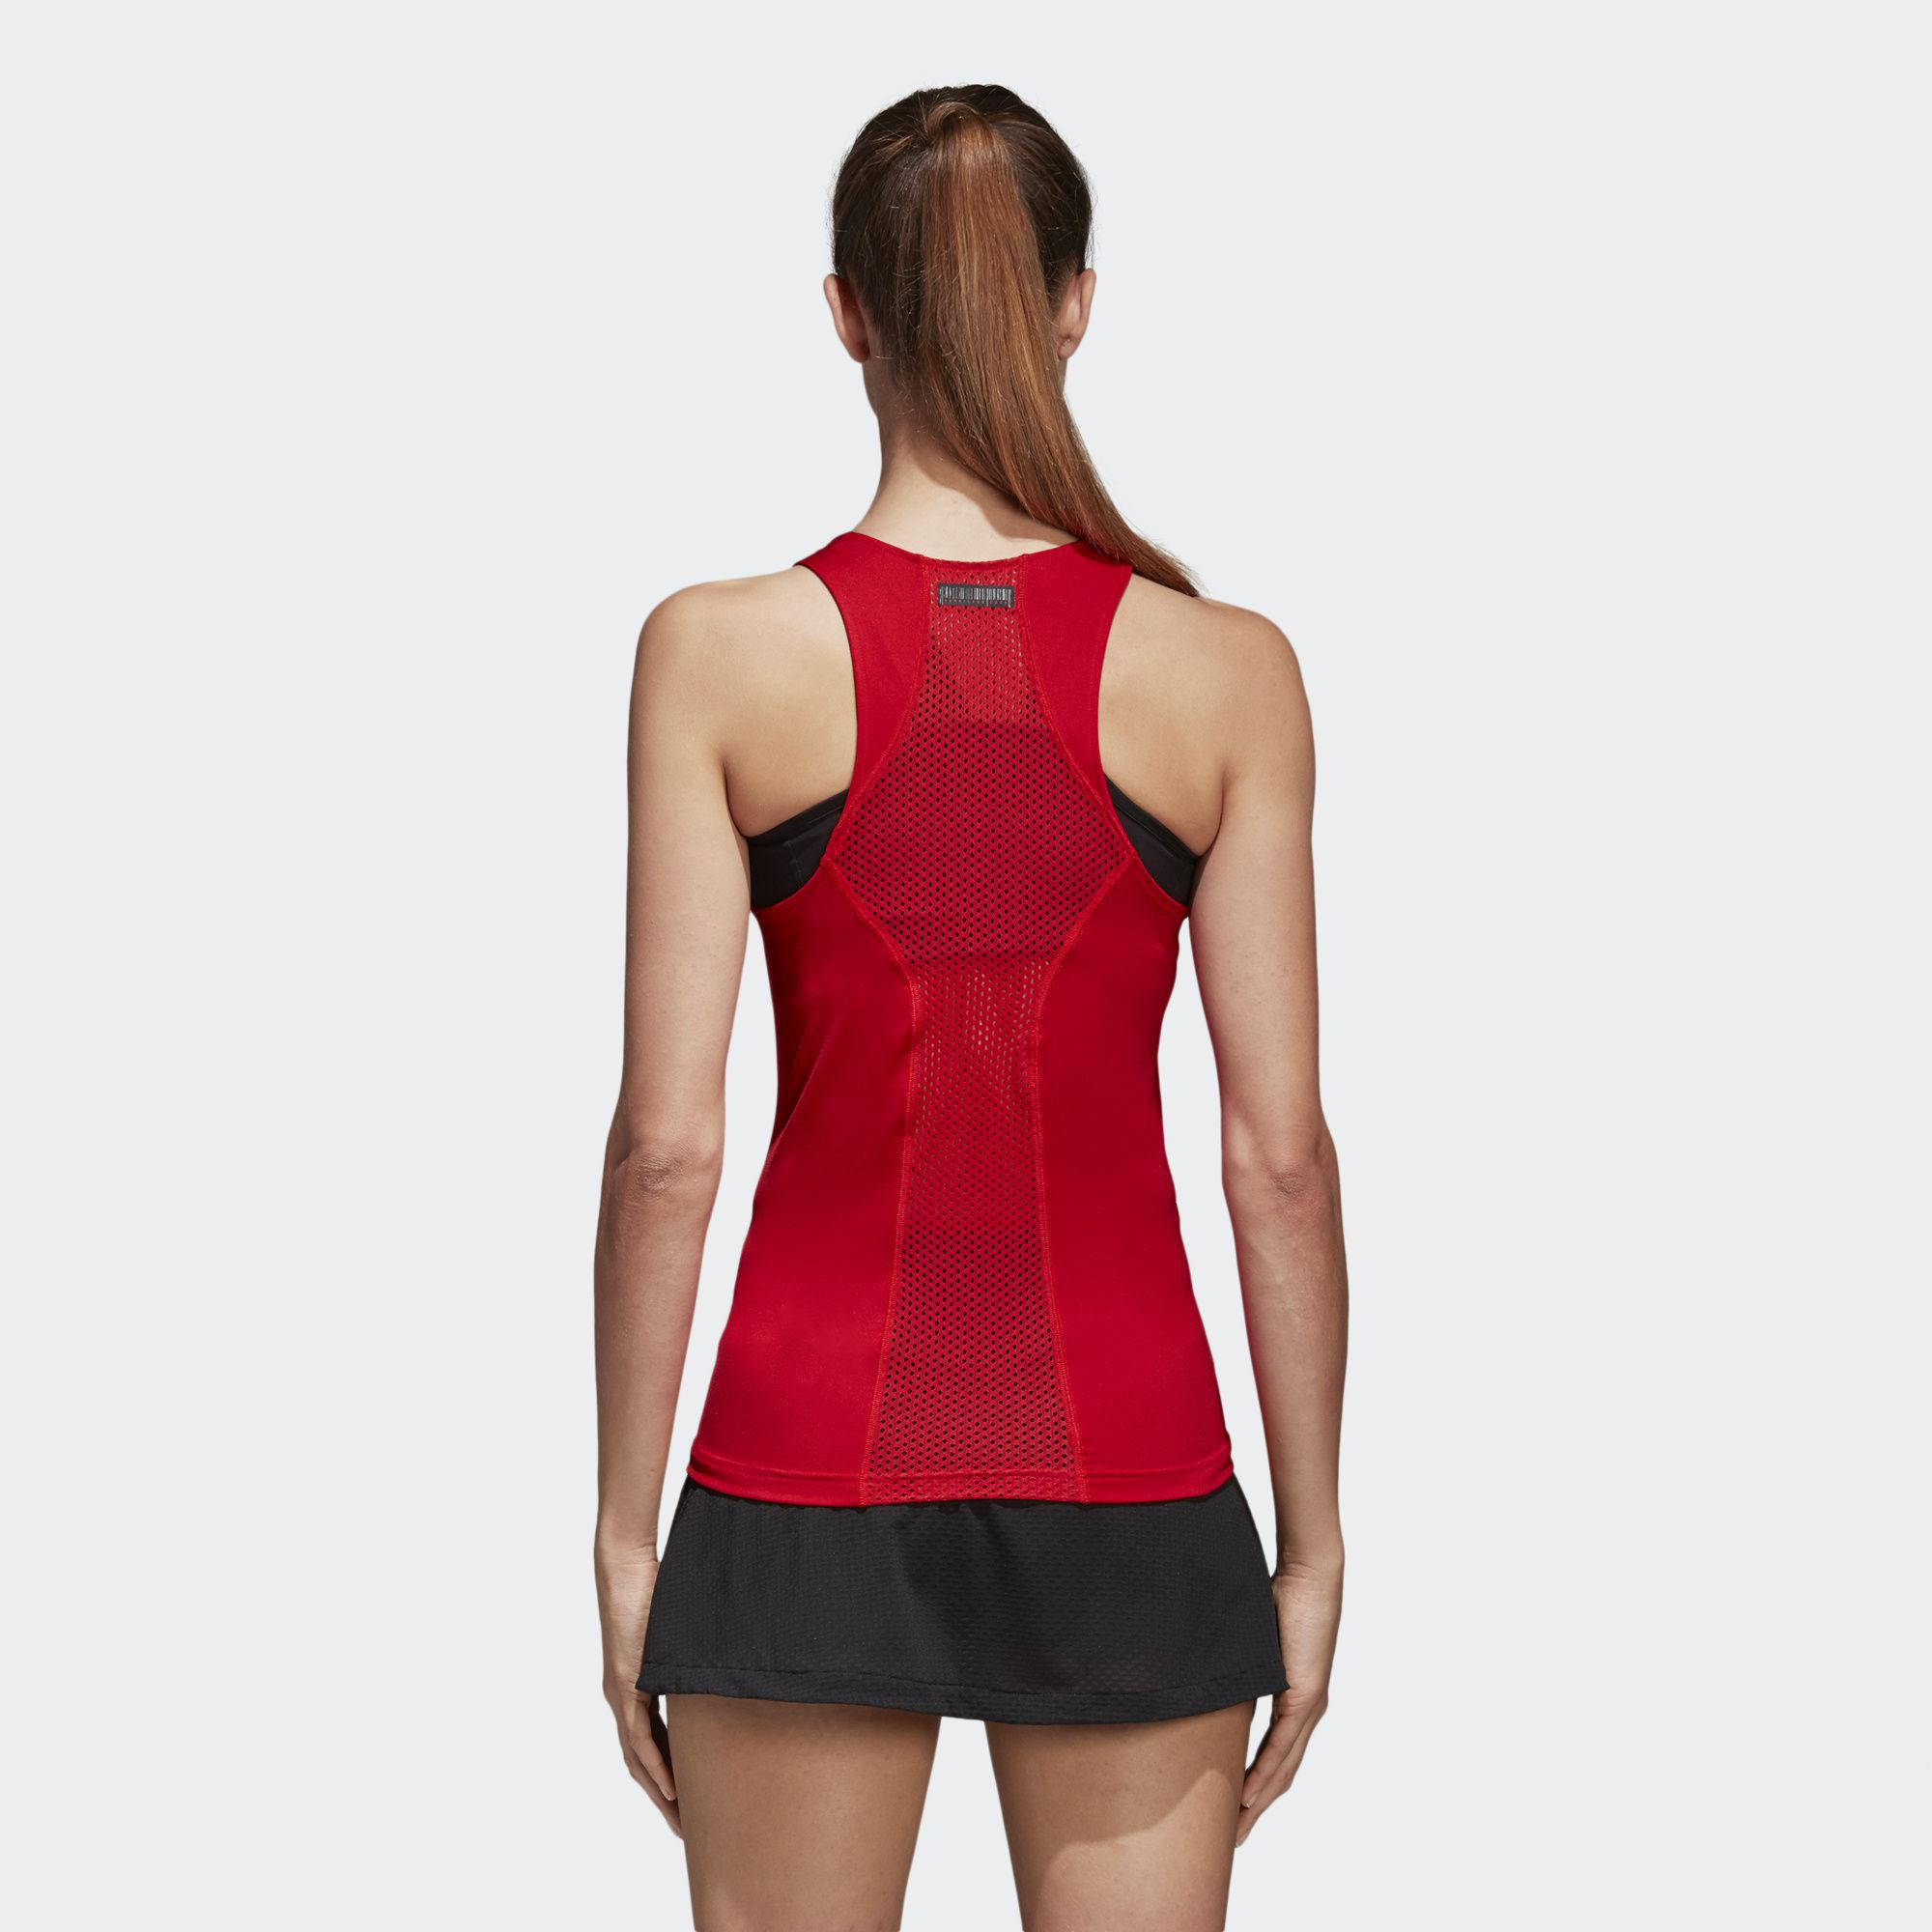 Adidas Womens Barricade Tank - Red - Tennisnuts.com